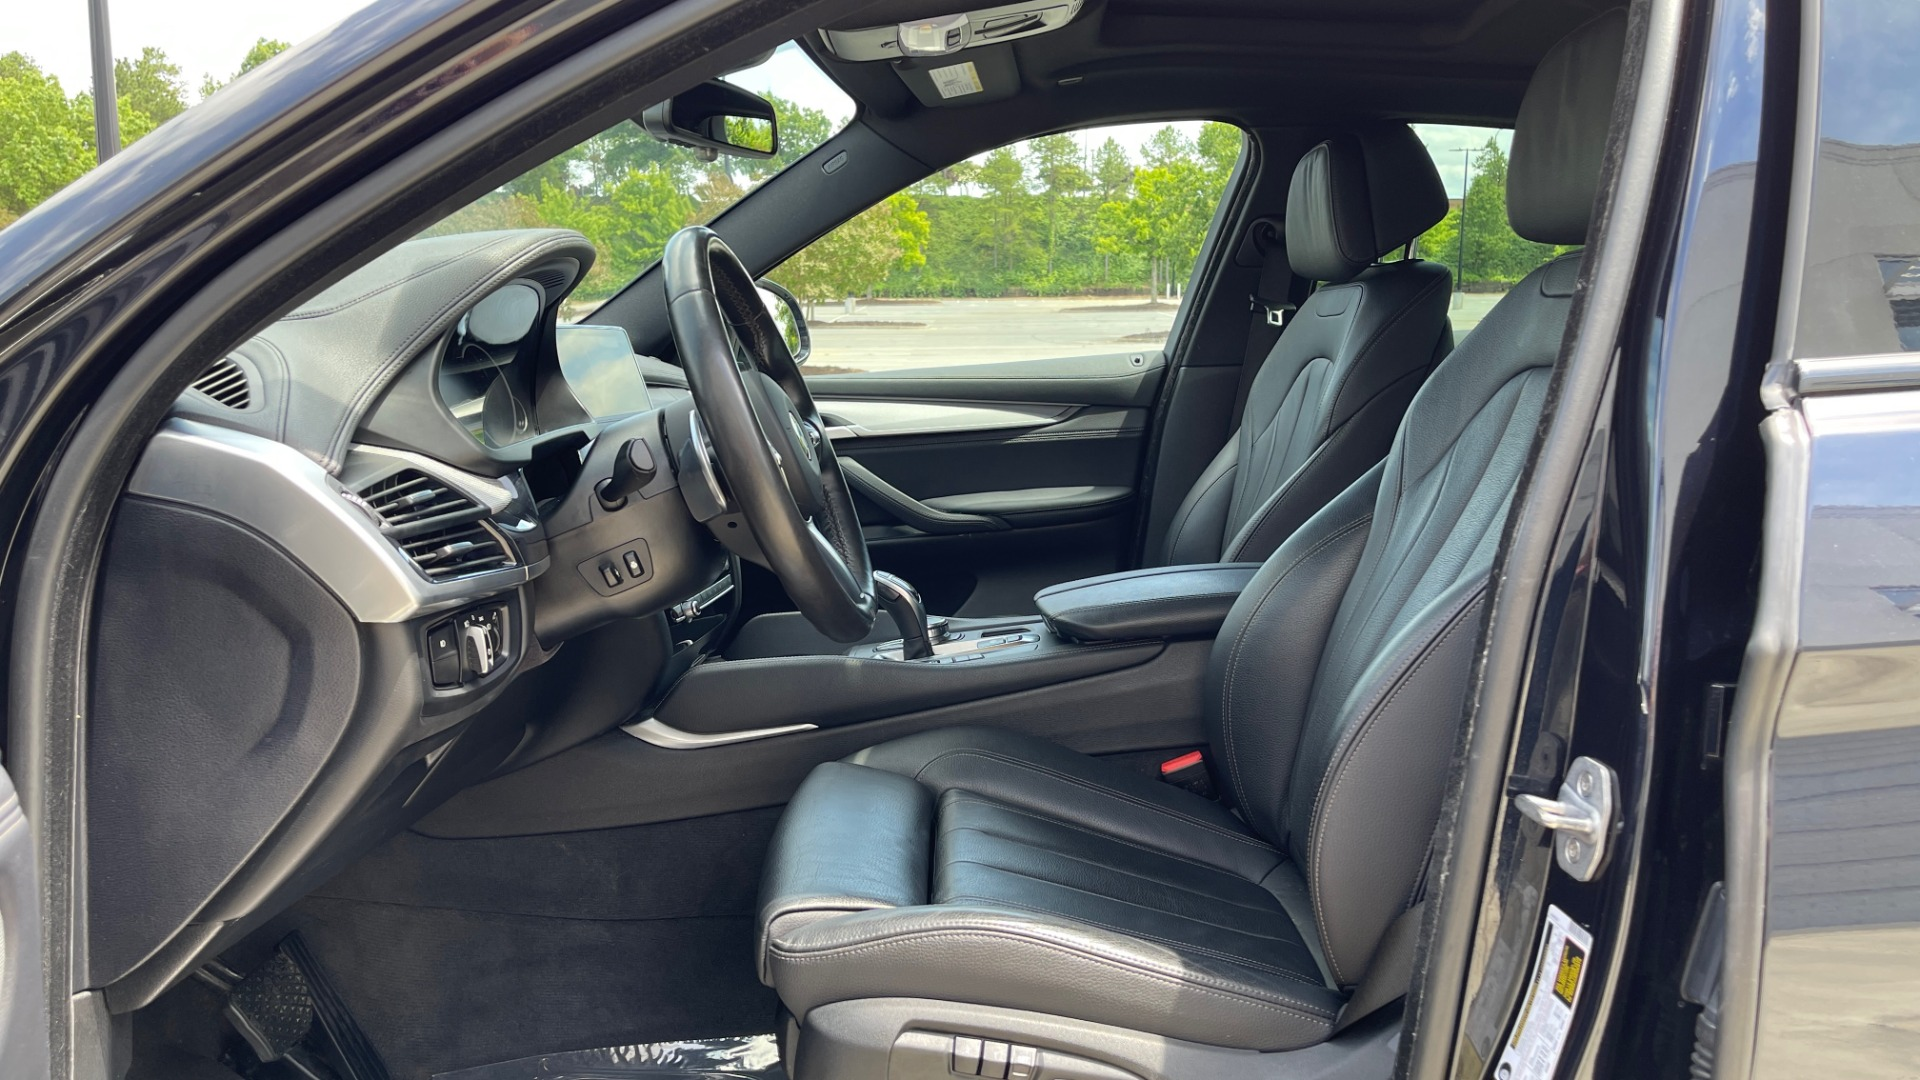 Used 2018 BMW X6 XDRIVE35I M-SPORT / DRVR ASST / PRK ASST / H/K SND / APPLE / WIRELESS CHARG for sale $51,995 at Formula Imports in Charlotte NC 28227 35